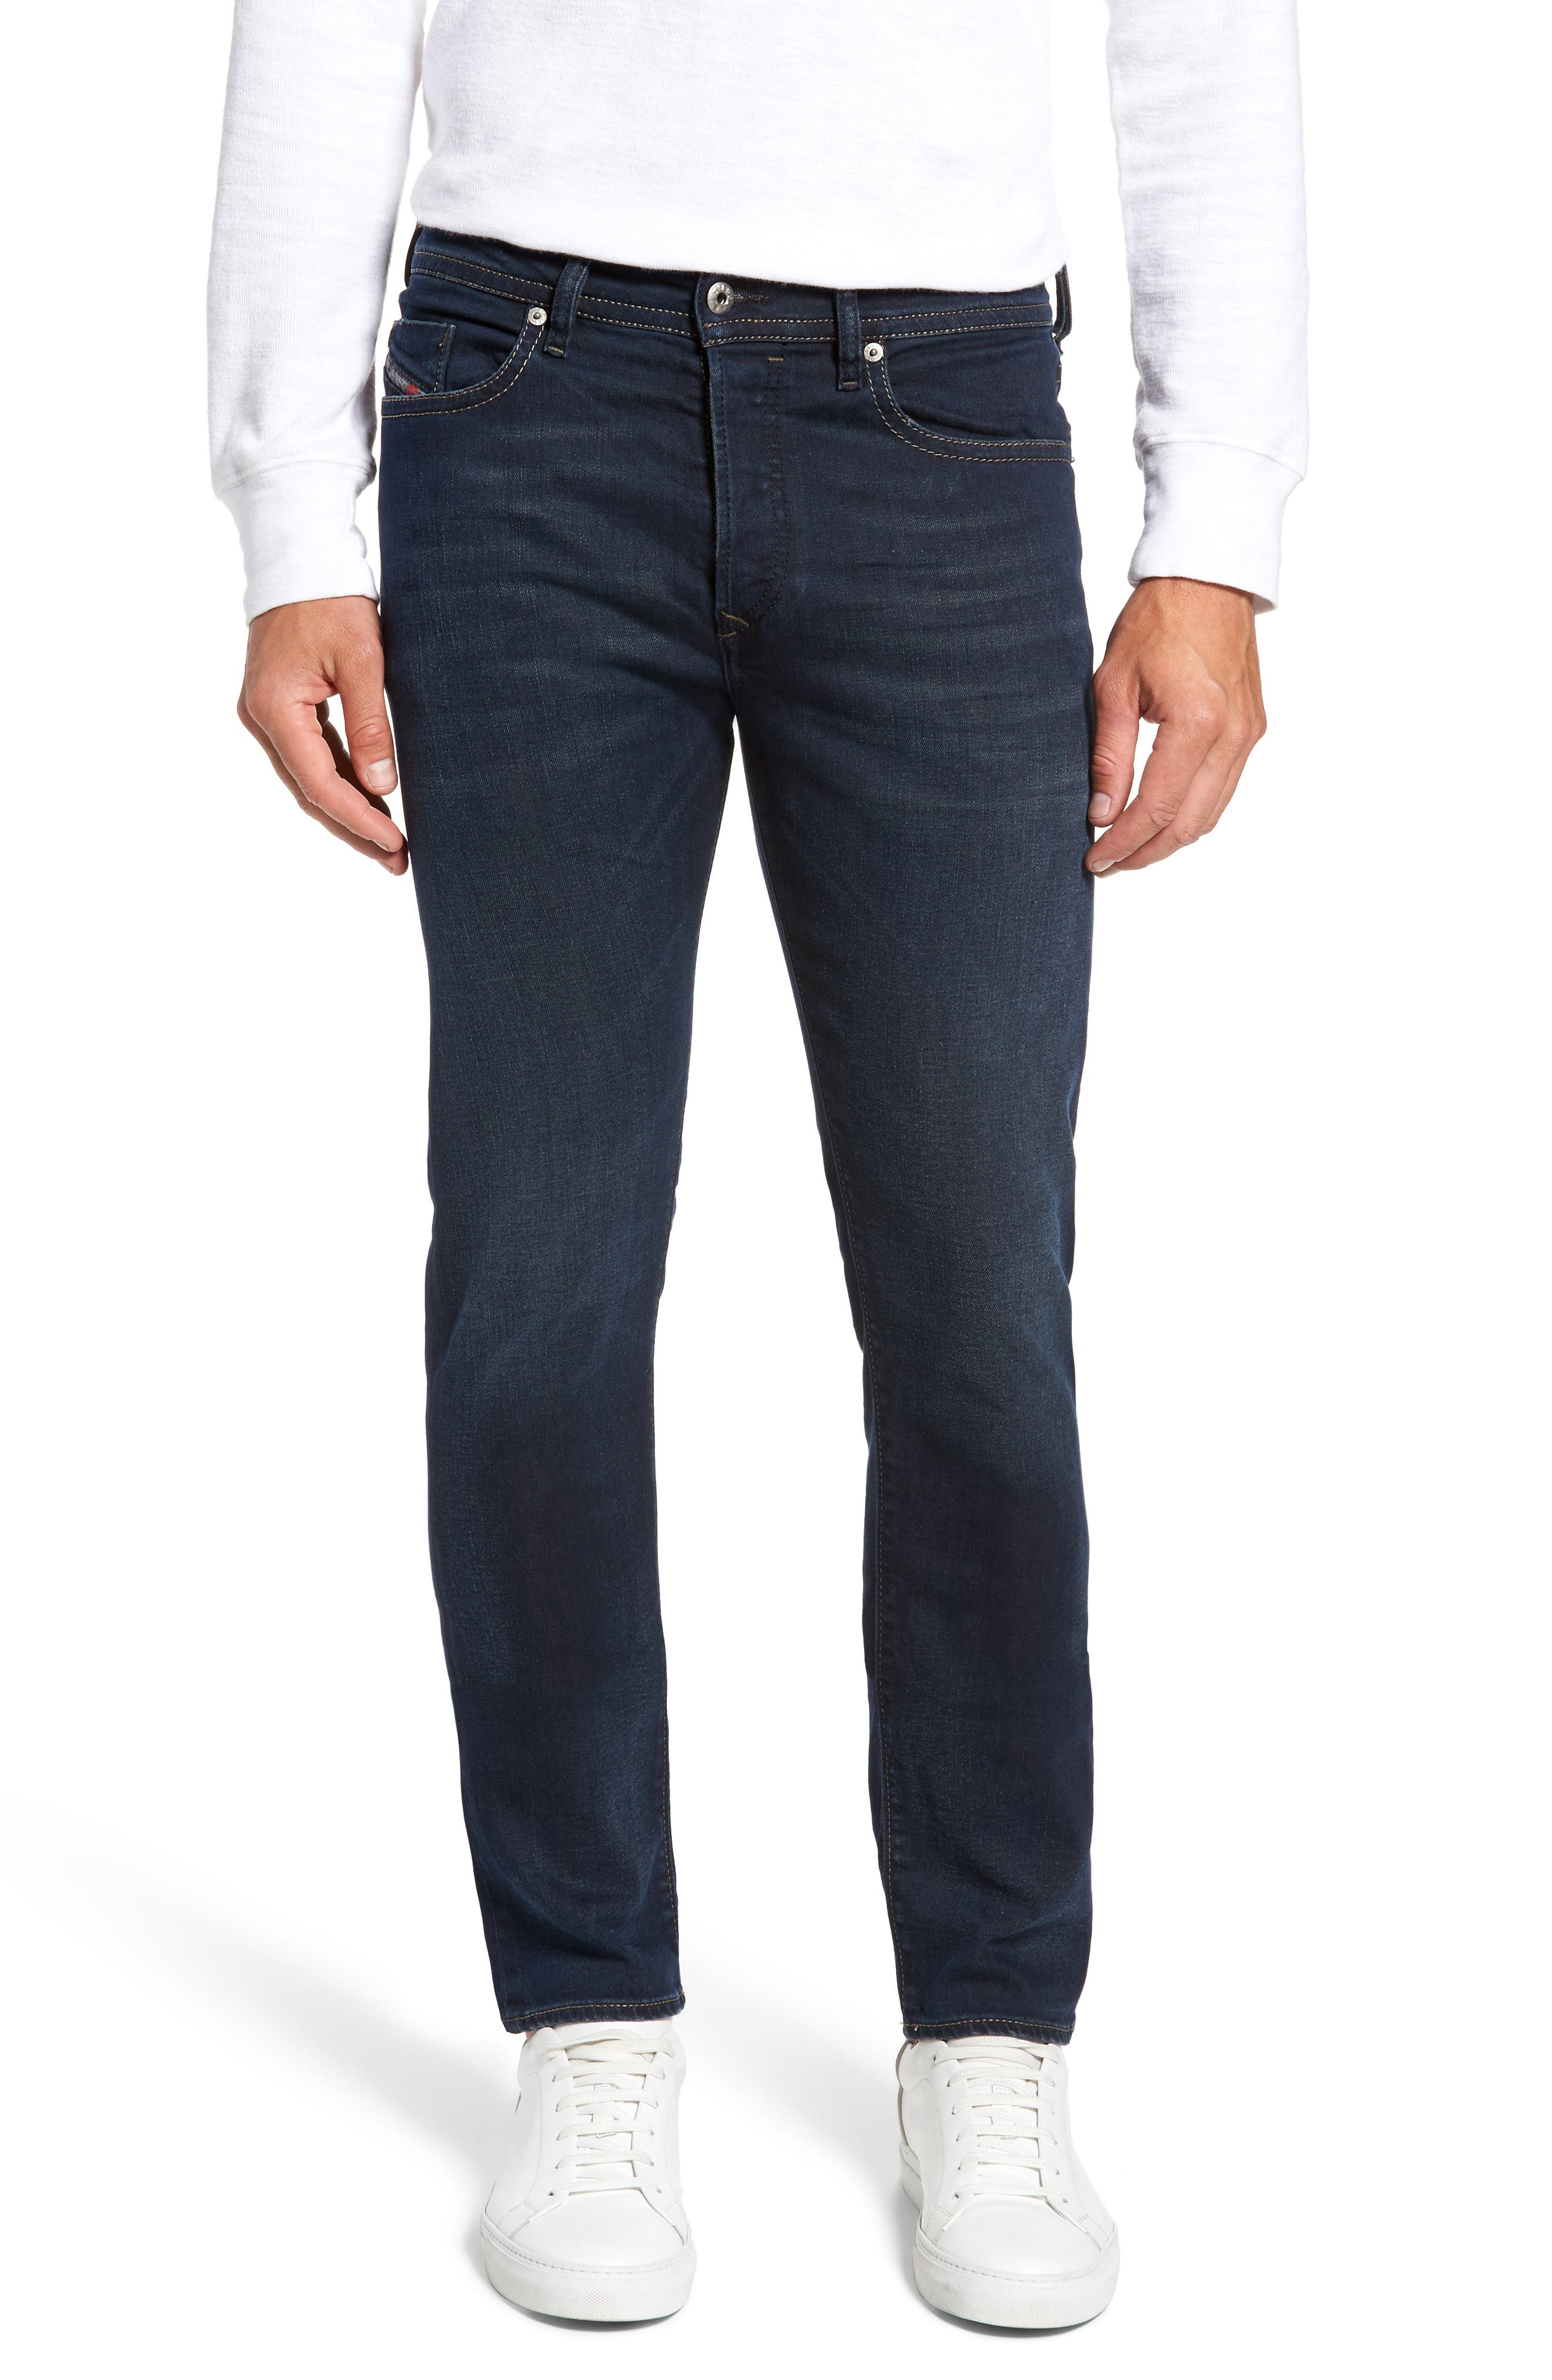 Buster Slim Straight Fit Jeans,                             Main thumbnail 1, color,                             Denim